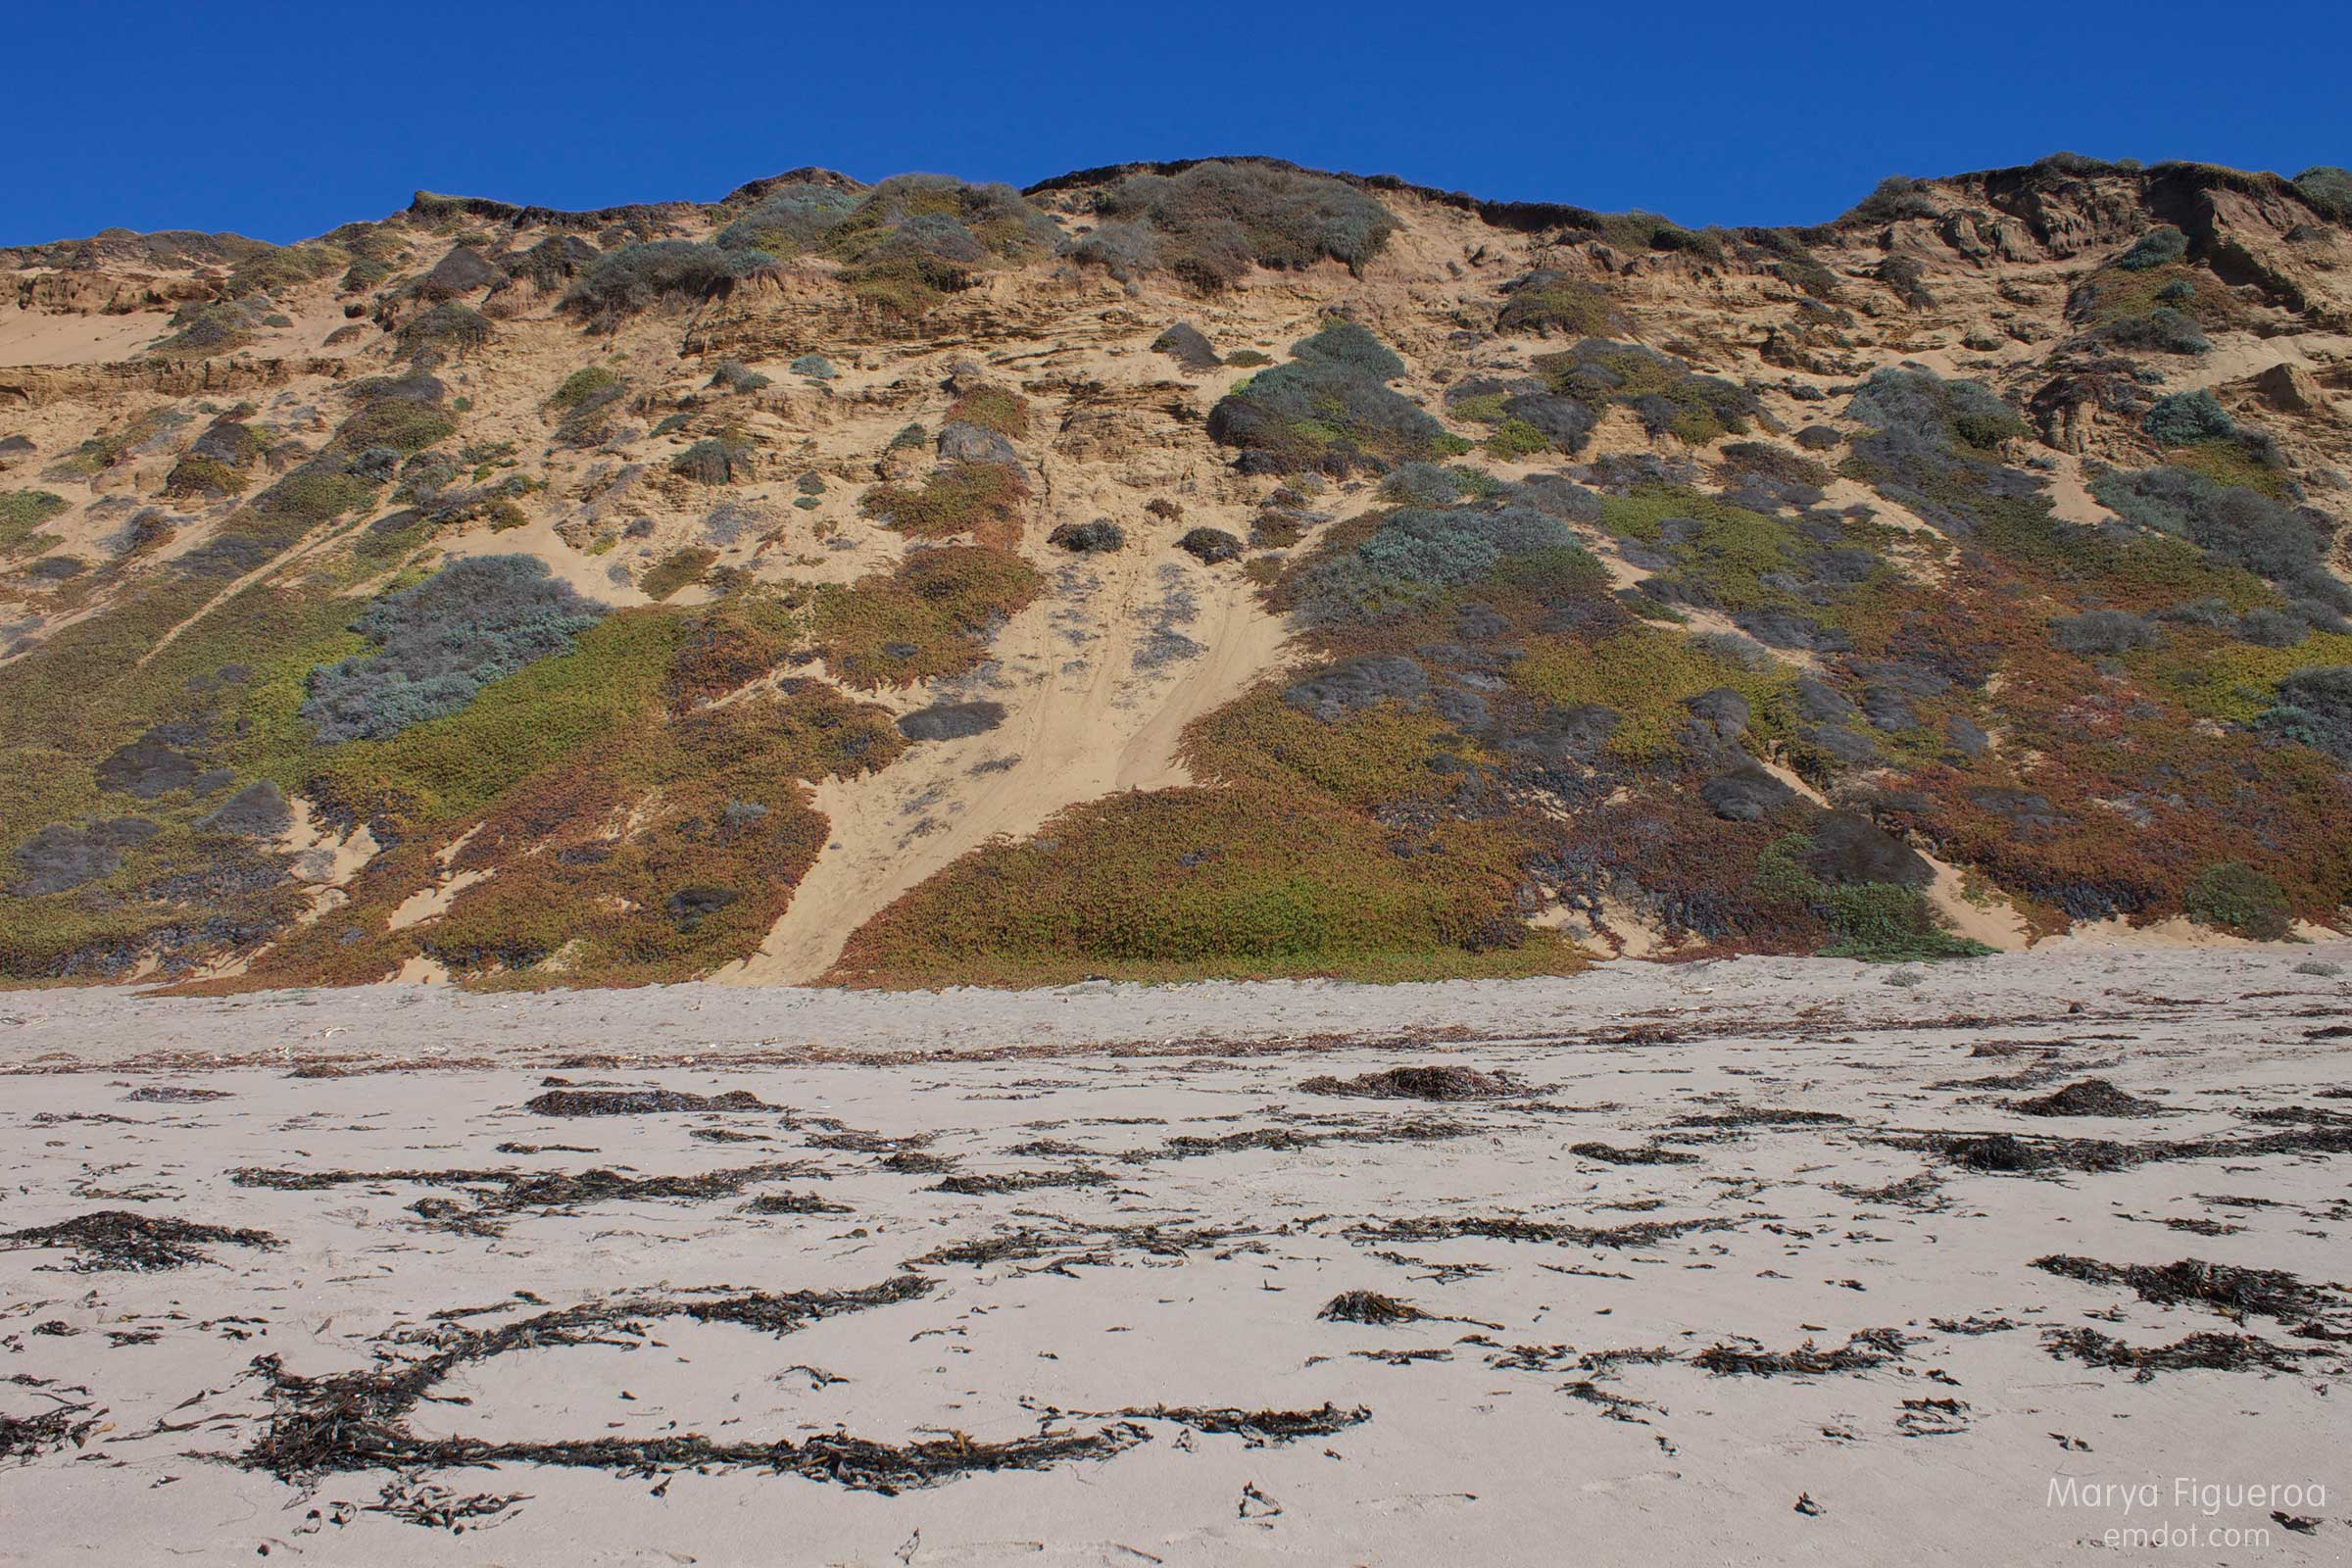 the sandy cliff